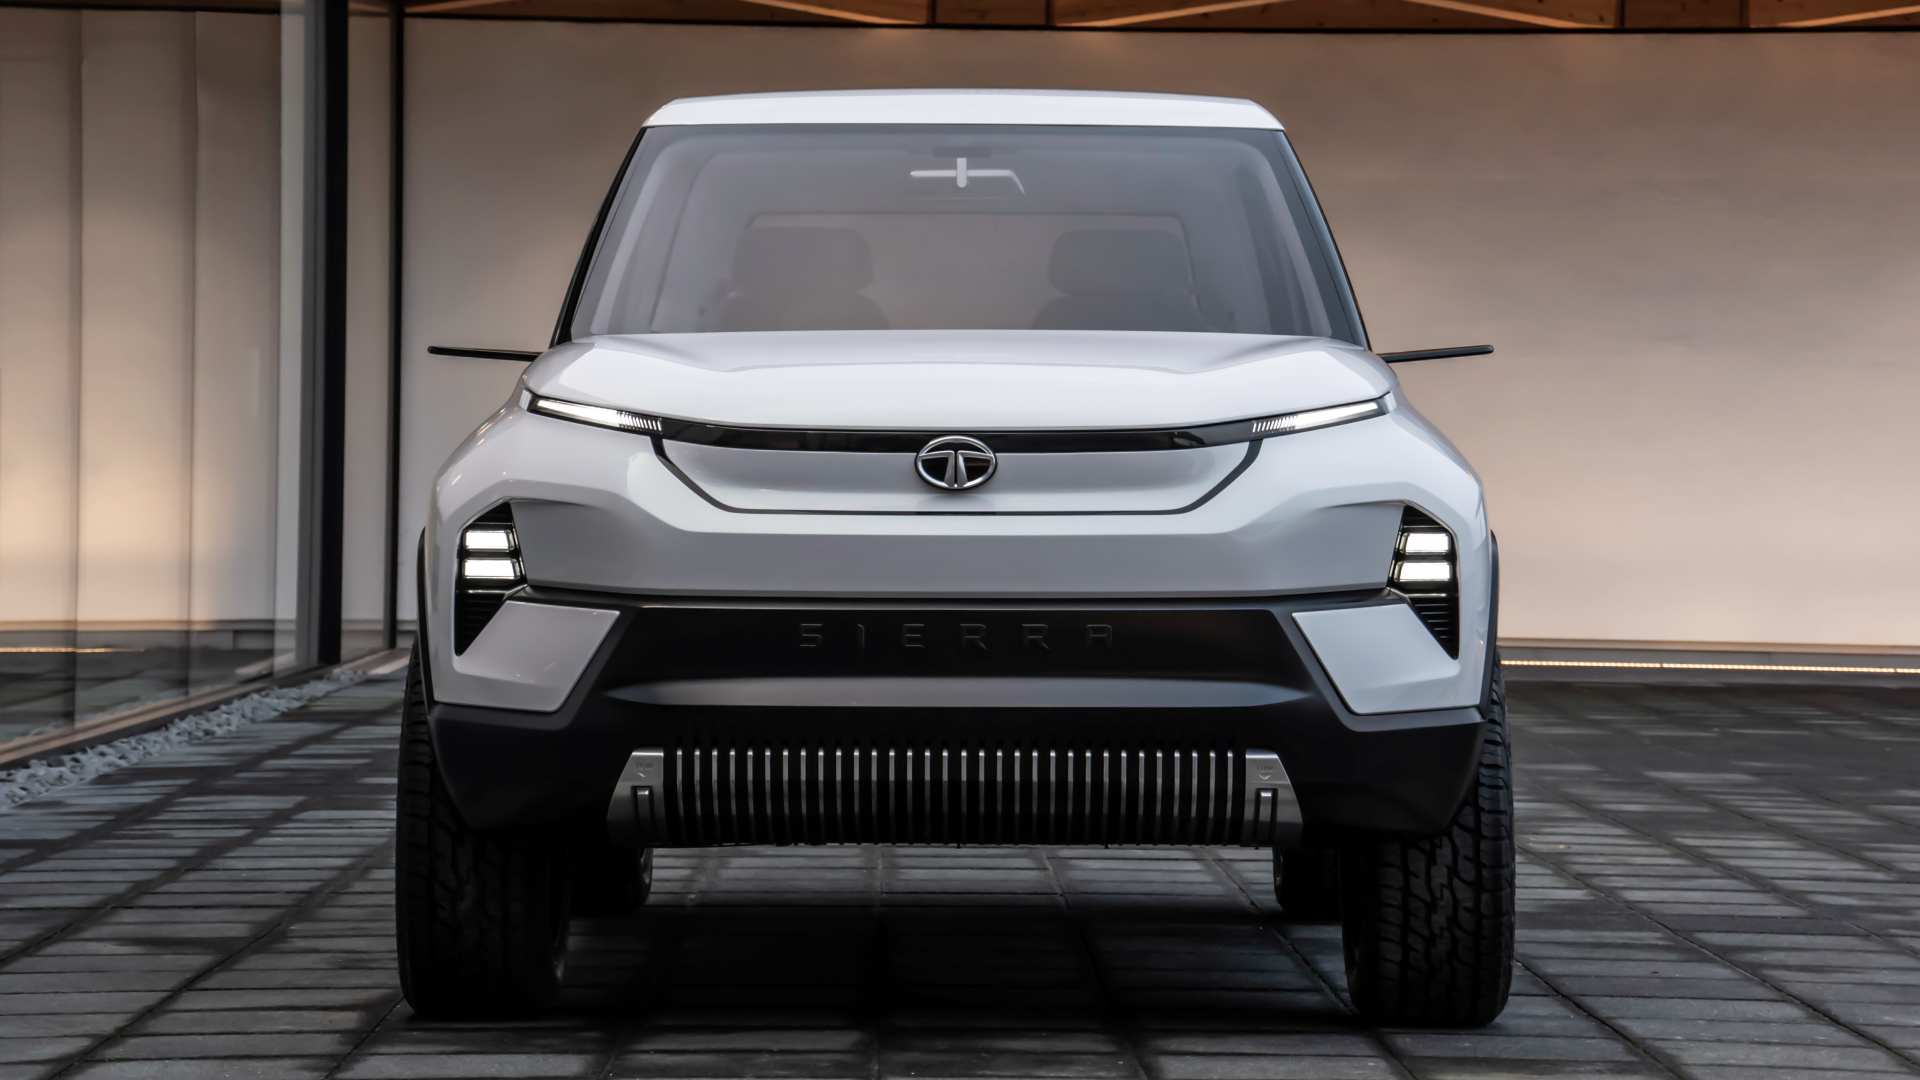 Tata Motors has announced it will have 10 BEVs in its portfolio by 2025. Image: Tata Motors